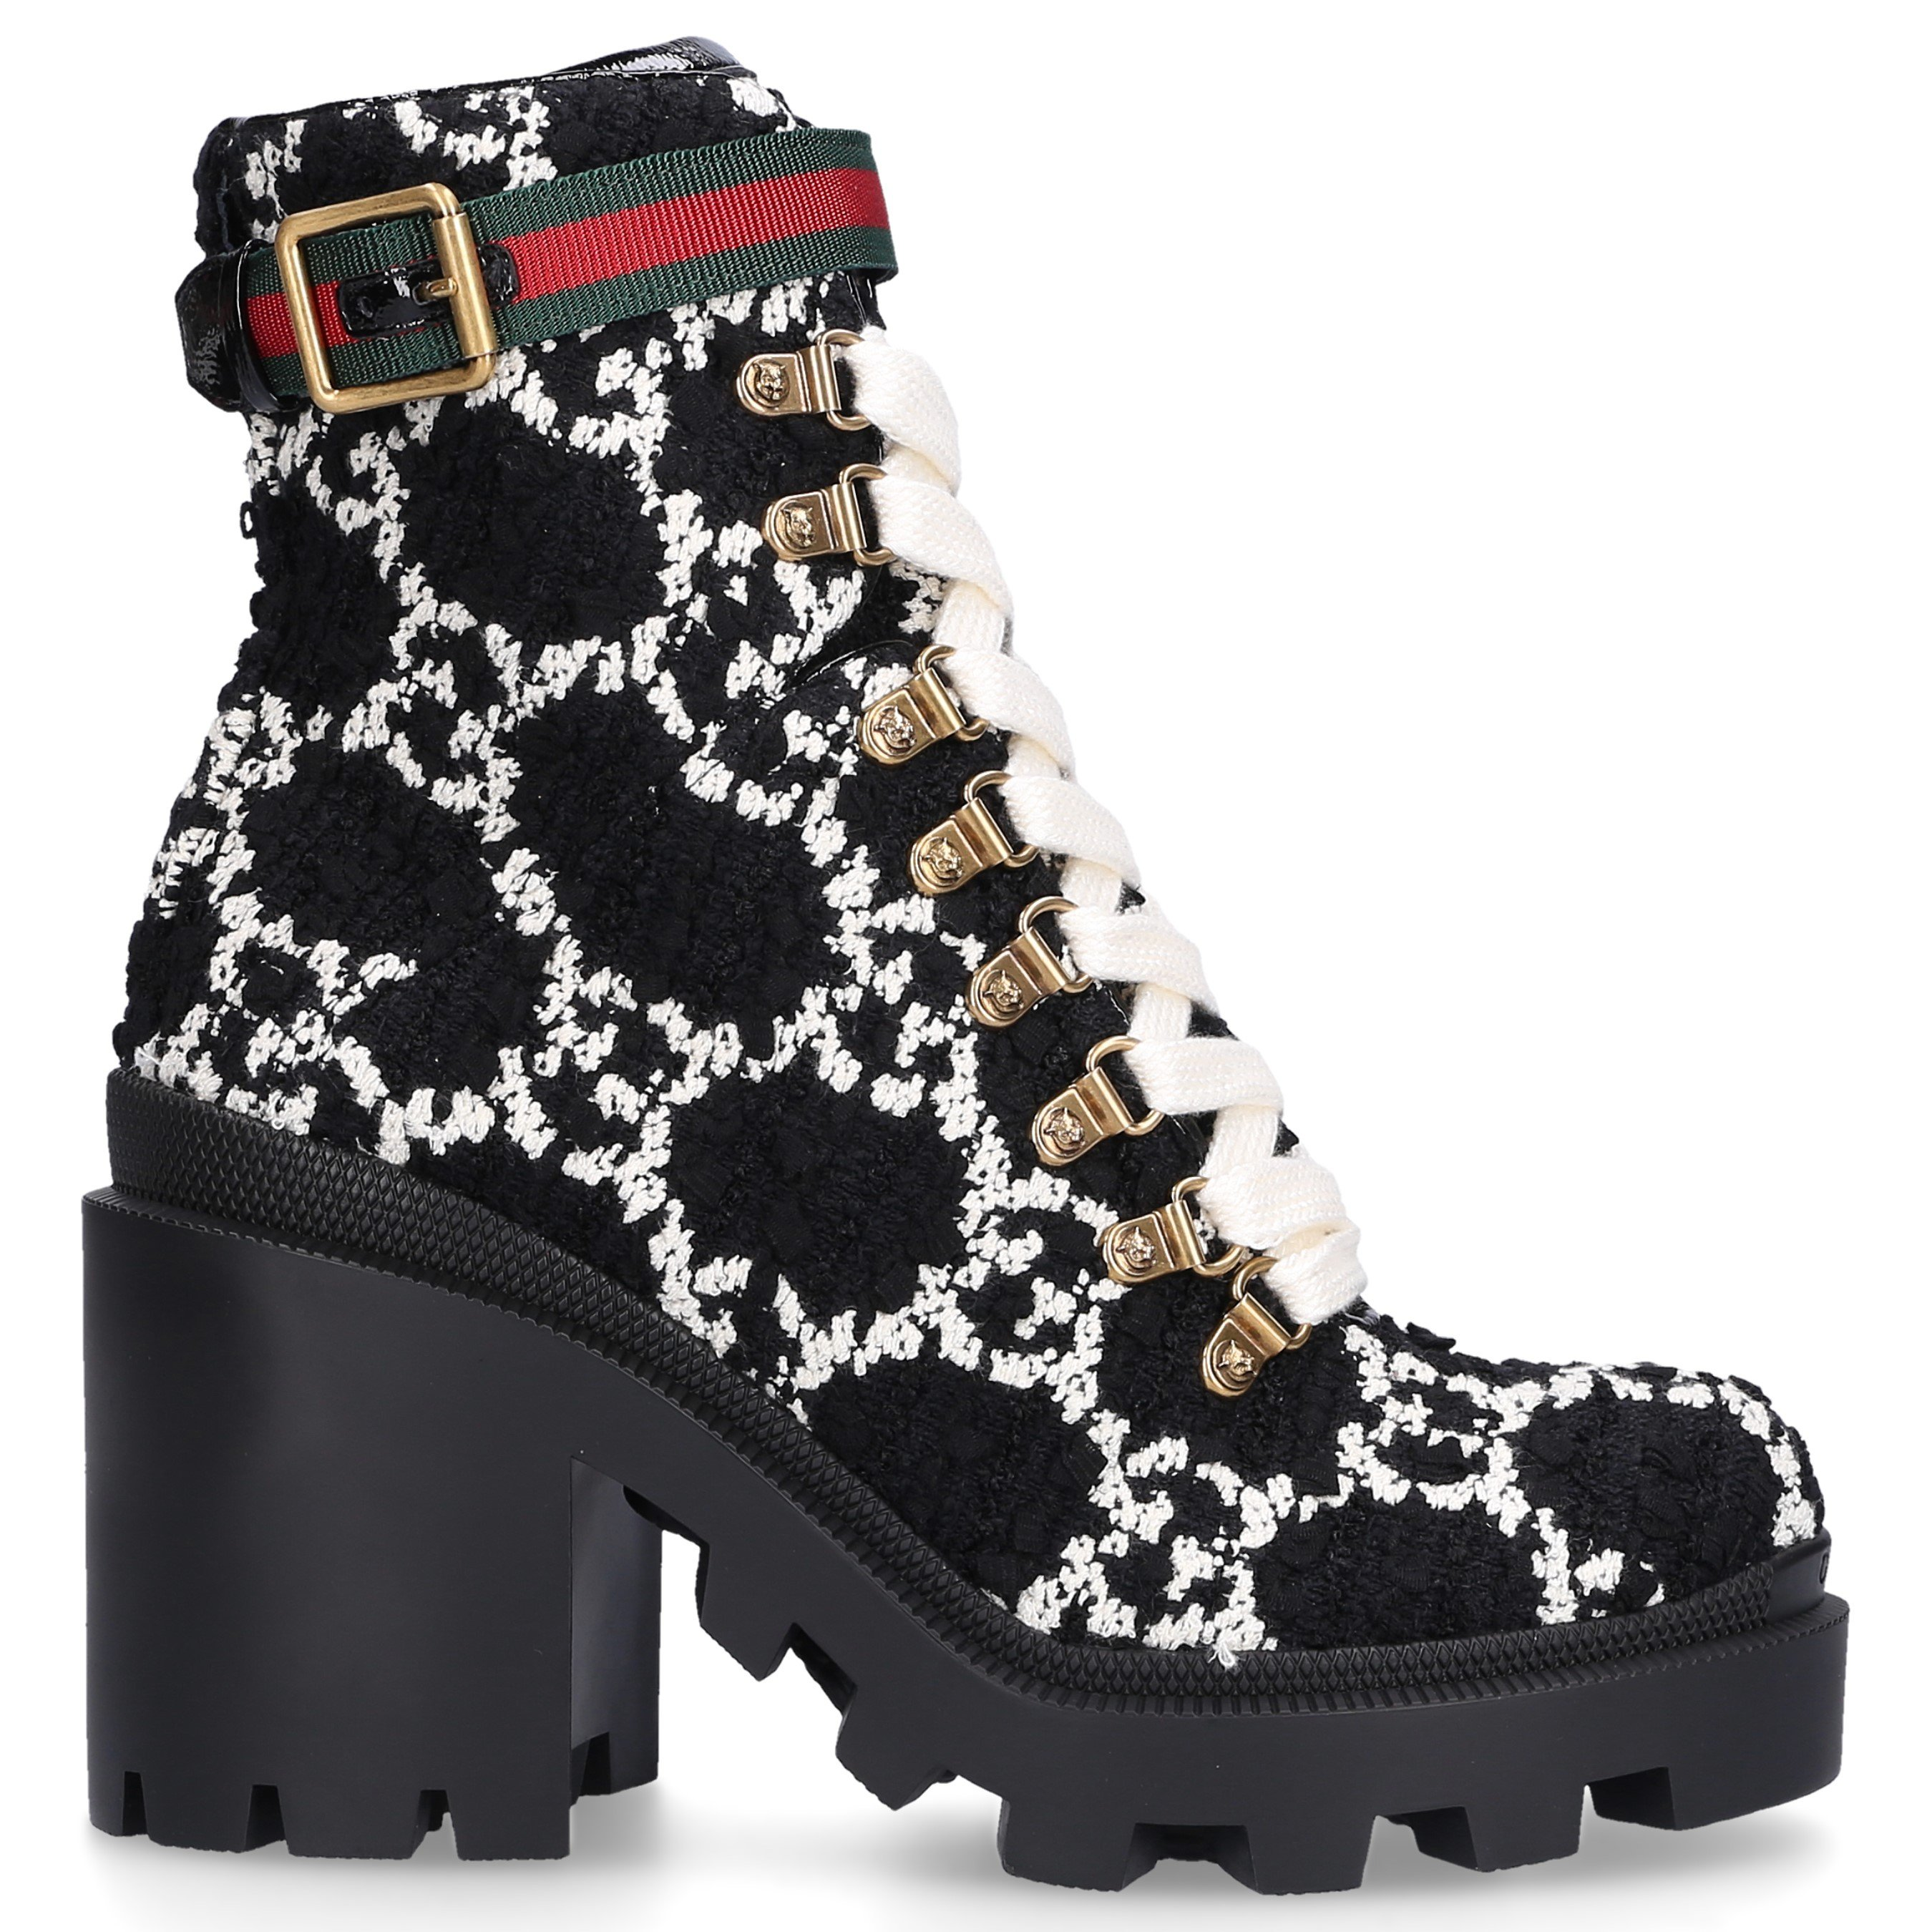 Gucci Gucci Lace Up Ankle Boots GG